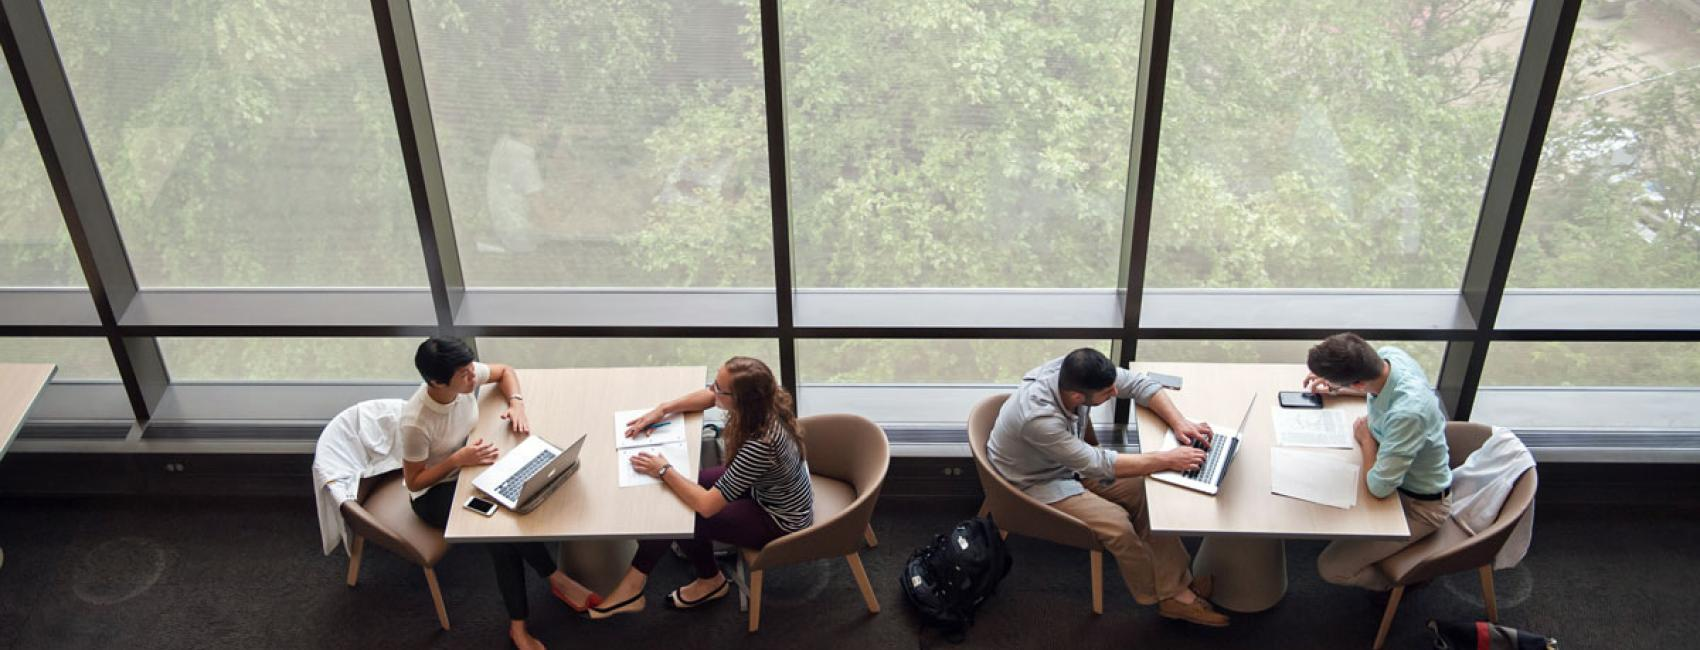 Students studying in the Taubman library